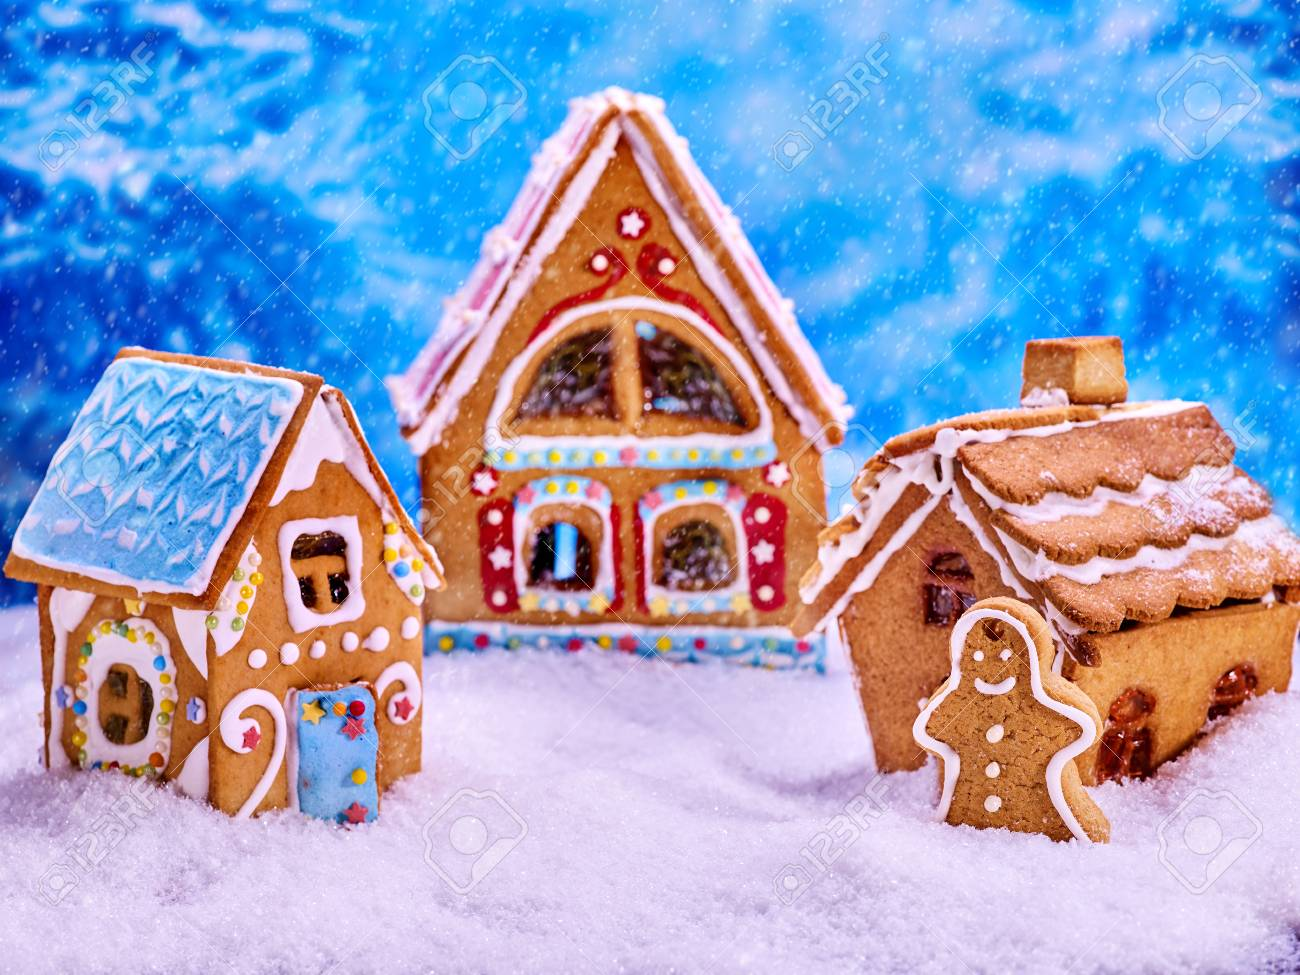 Christmas Tree With Ginger Bread House Cookies And Gingerbread Stock Photo Picture And Royalty Free Image Image 90798475